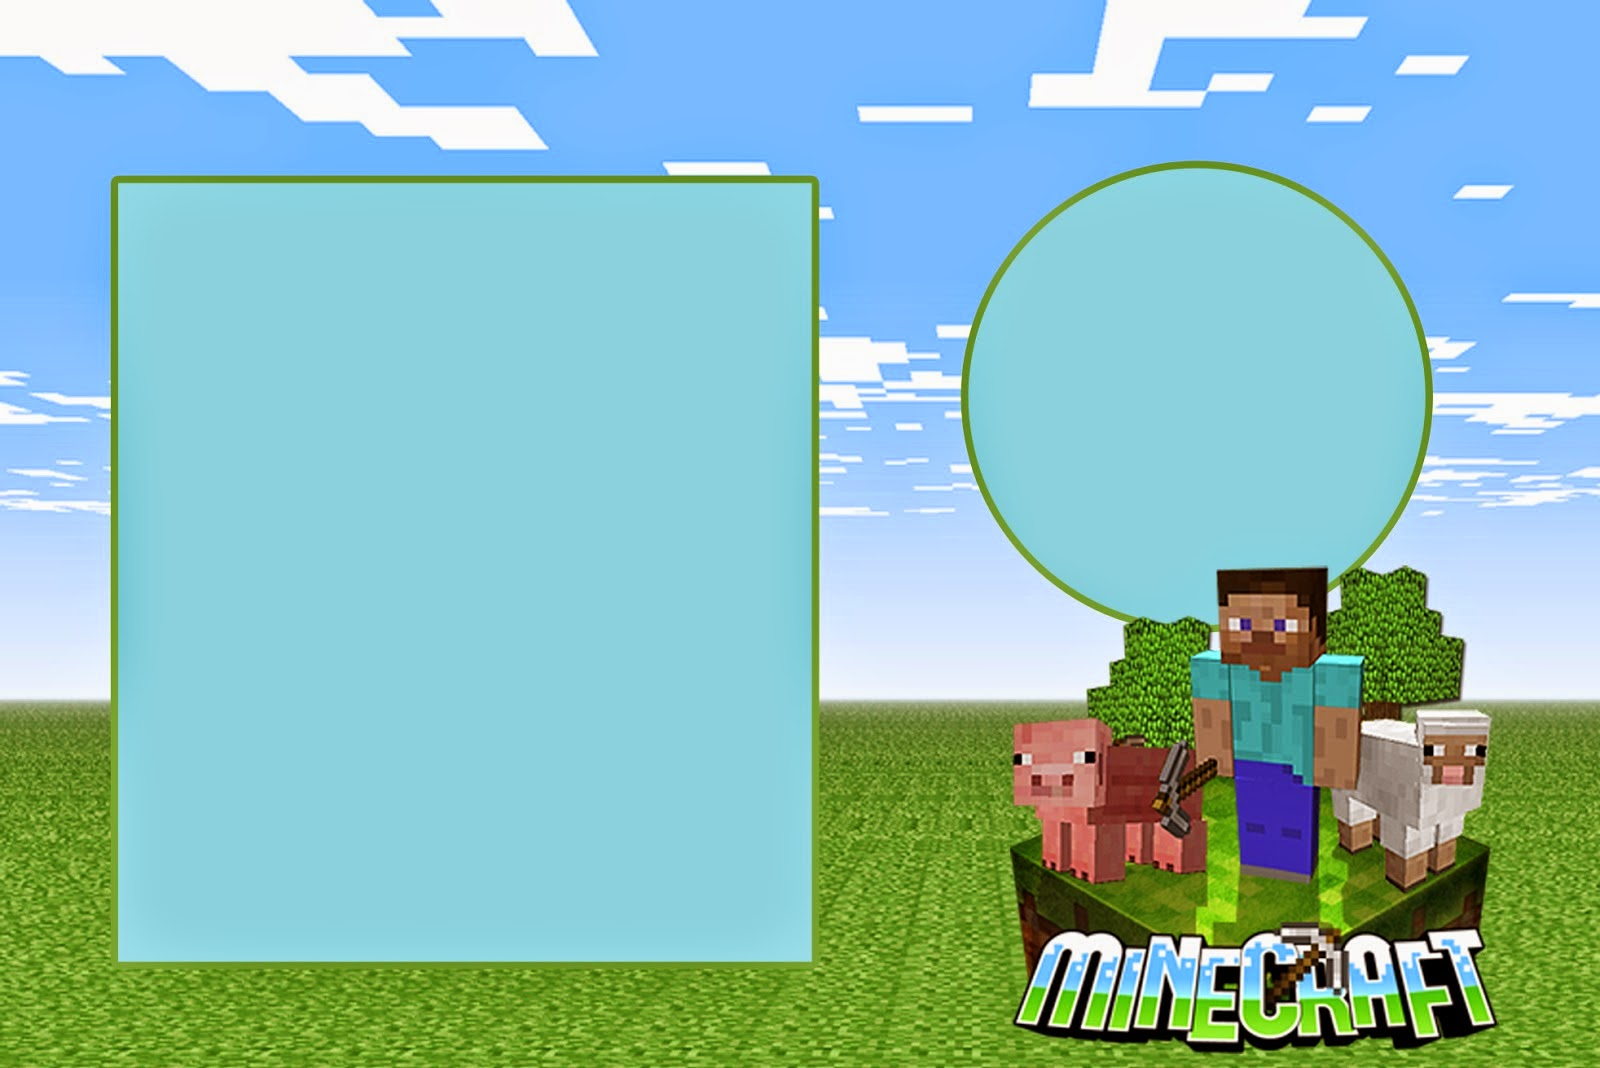 Minecraft Free Printable Invitations Is It For Parties